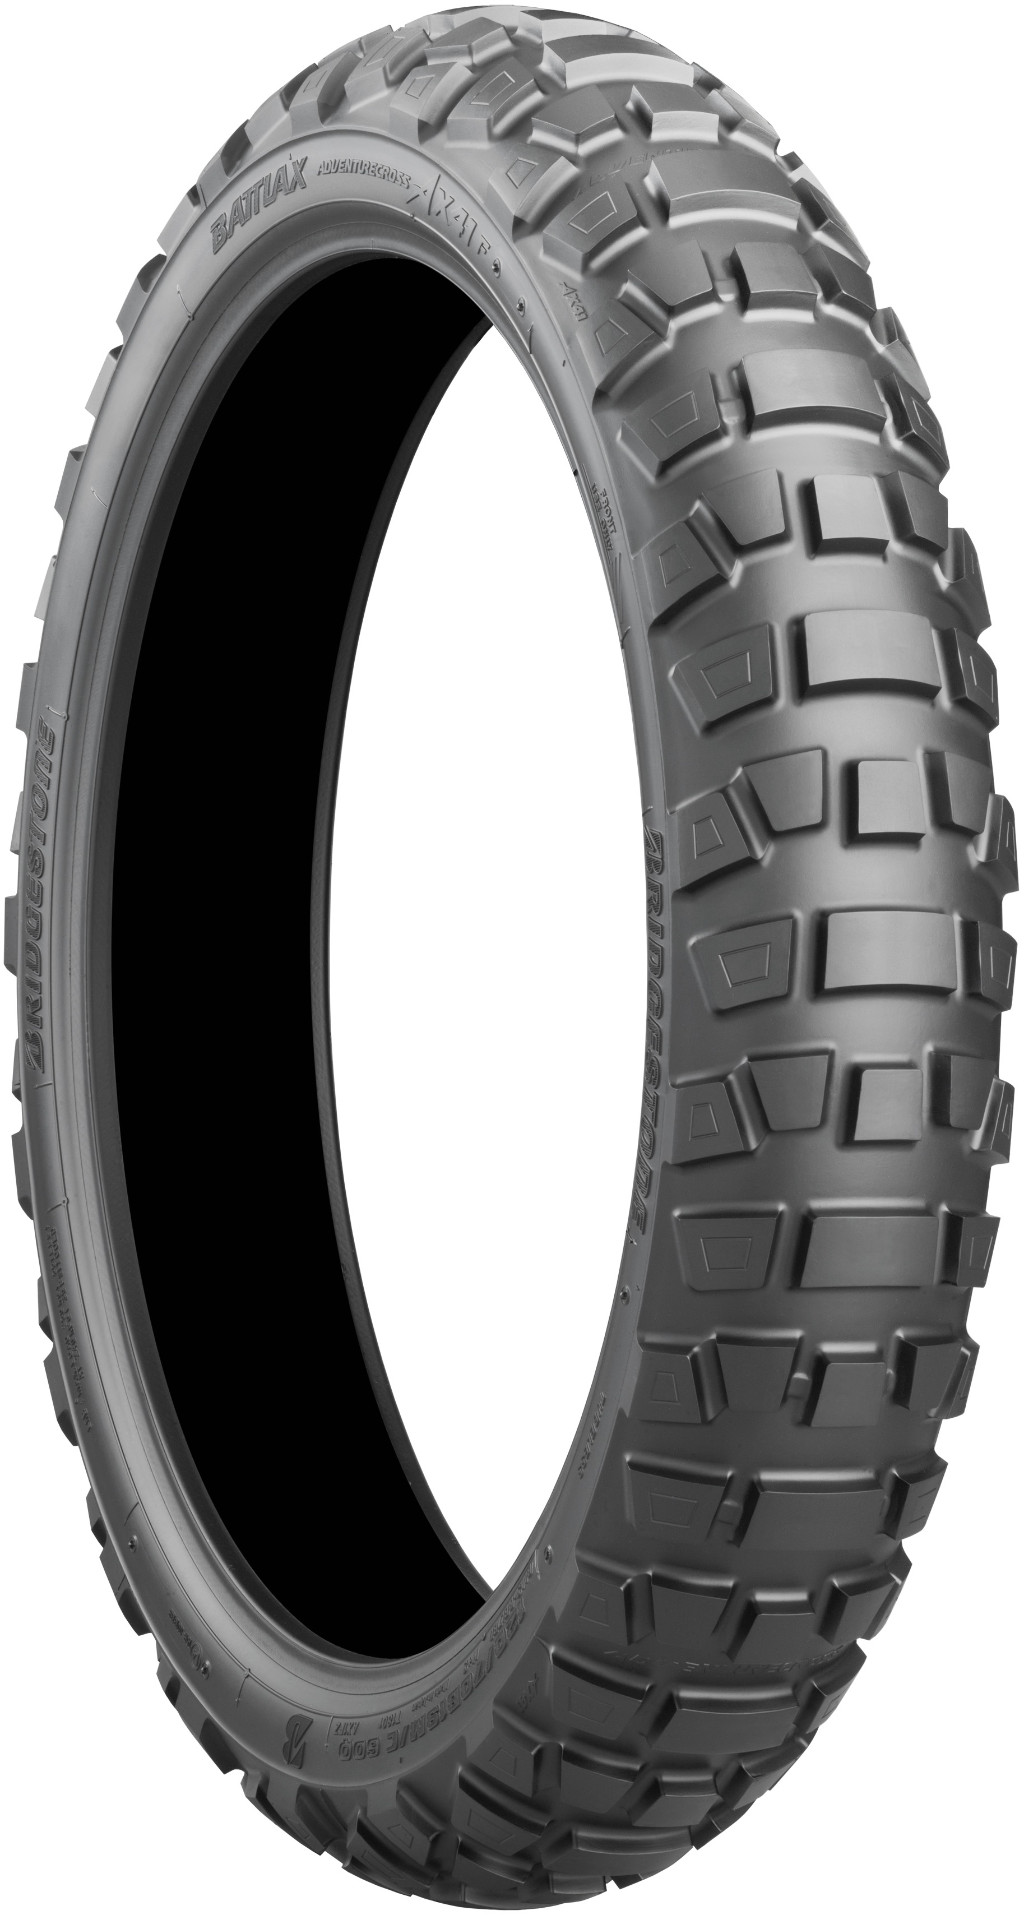 BRIDGESTONE BATTLAX ADVENTURECROSS AX41 [100/90- 19M/C 57Q] Tire